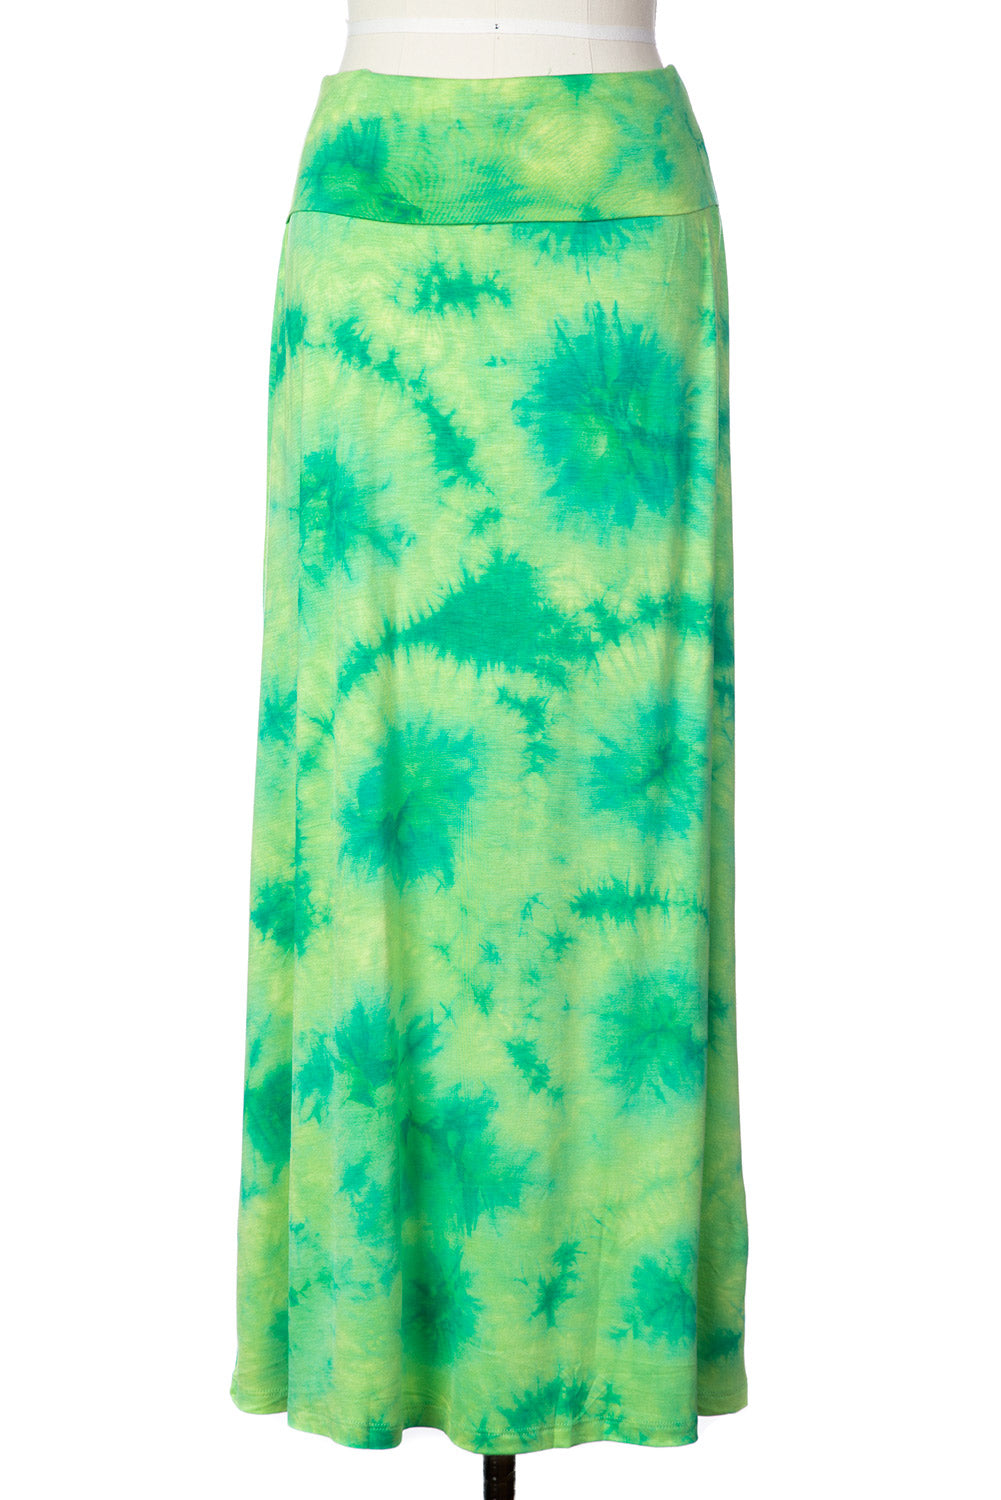 Type 1 Dying for Adventure Skirt in Green